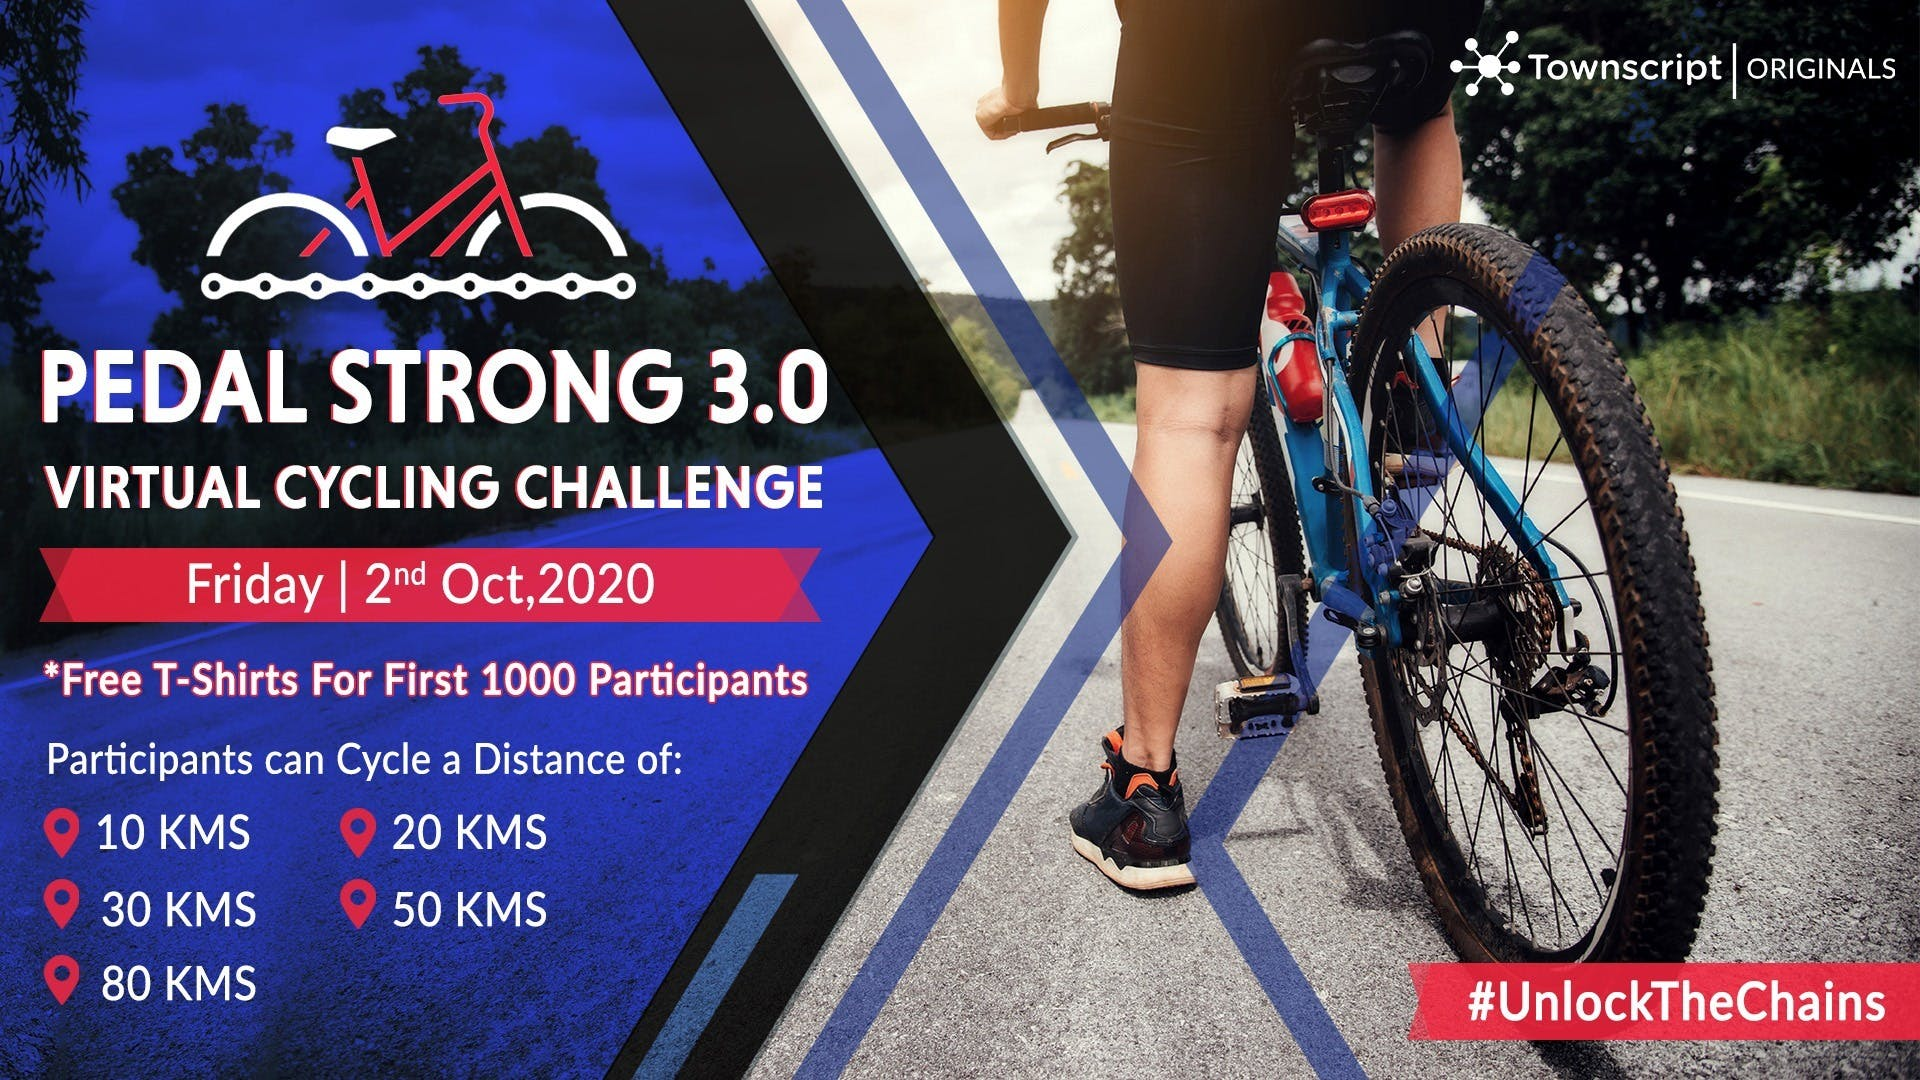 Pedal Strong 3.0 – Virtual Cycling Challenge